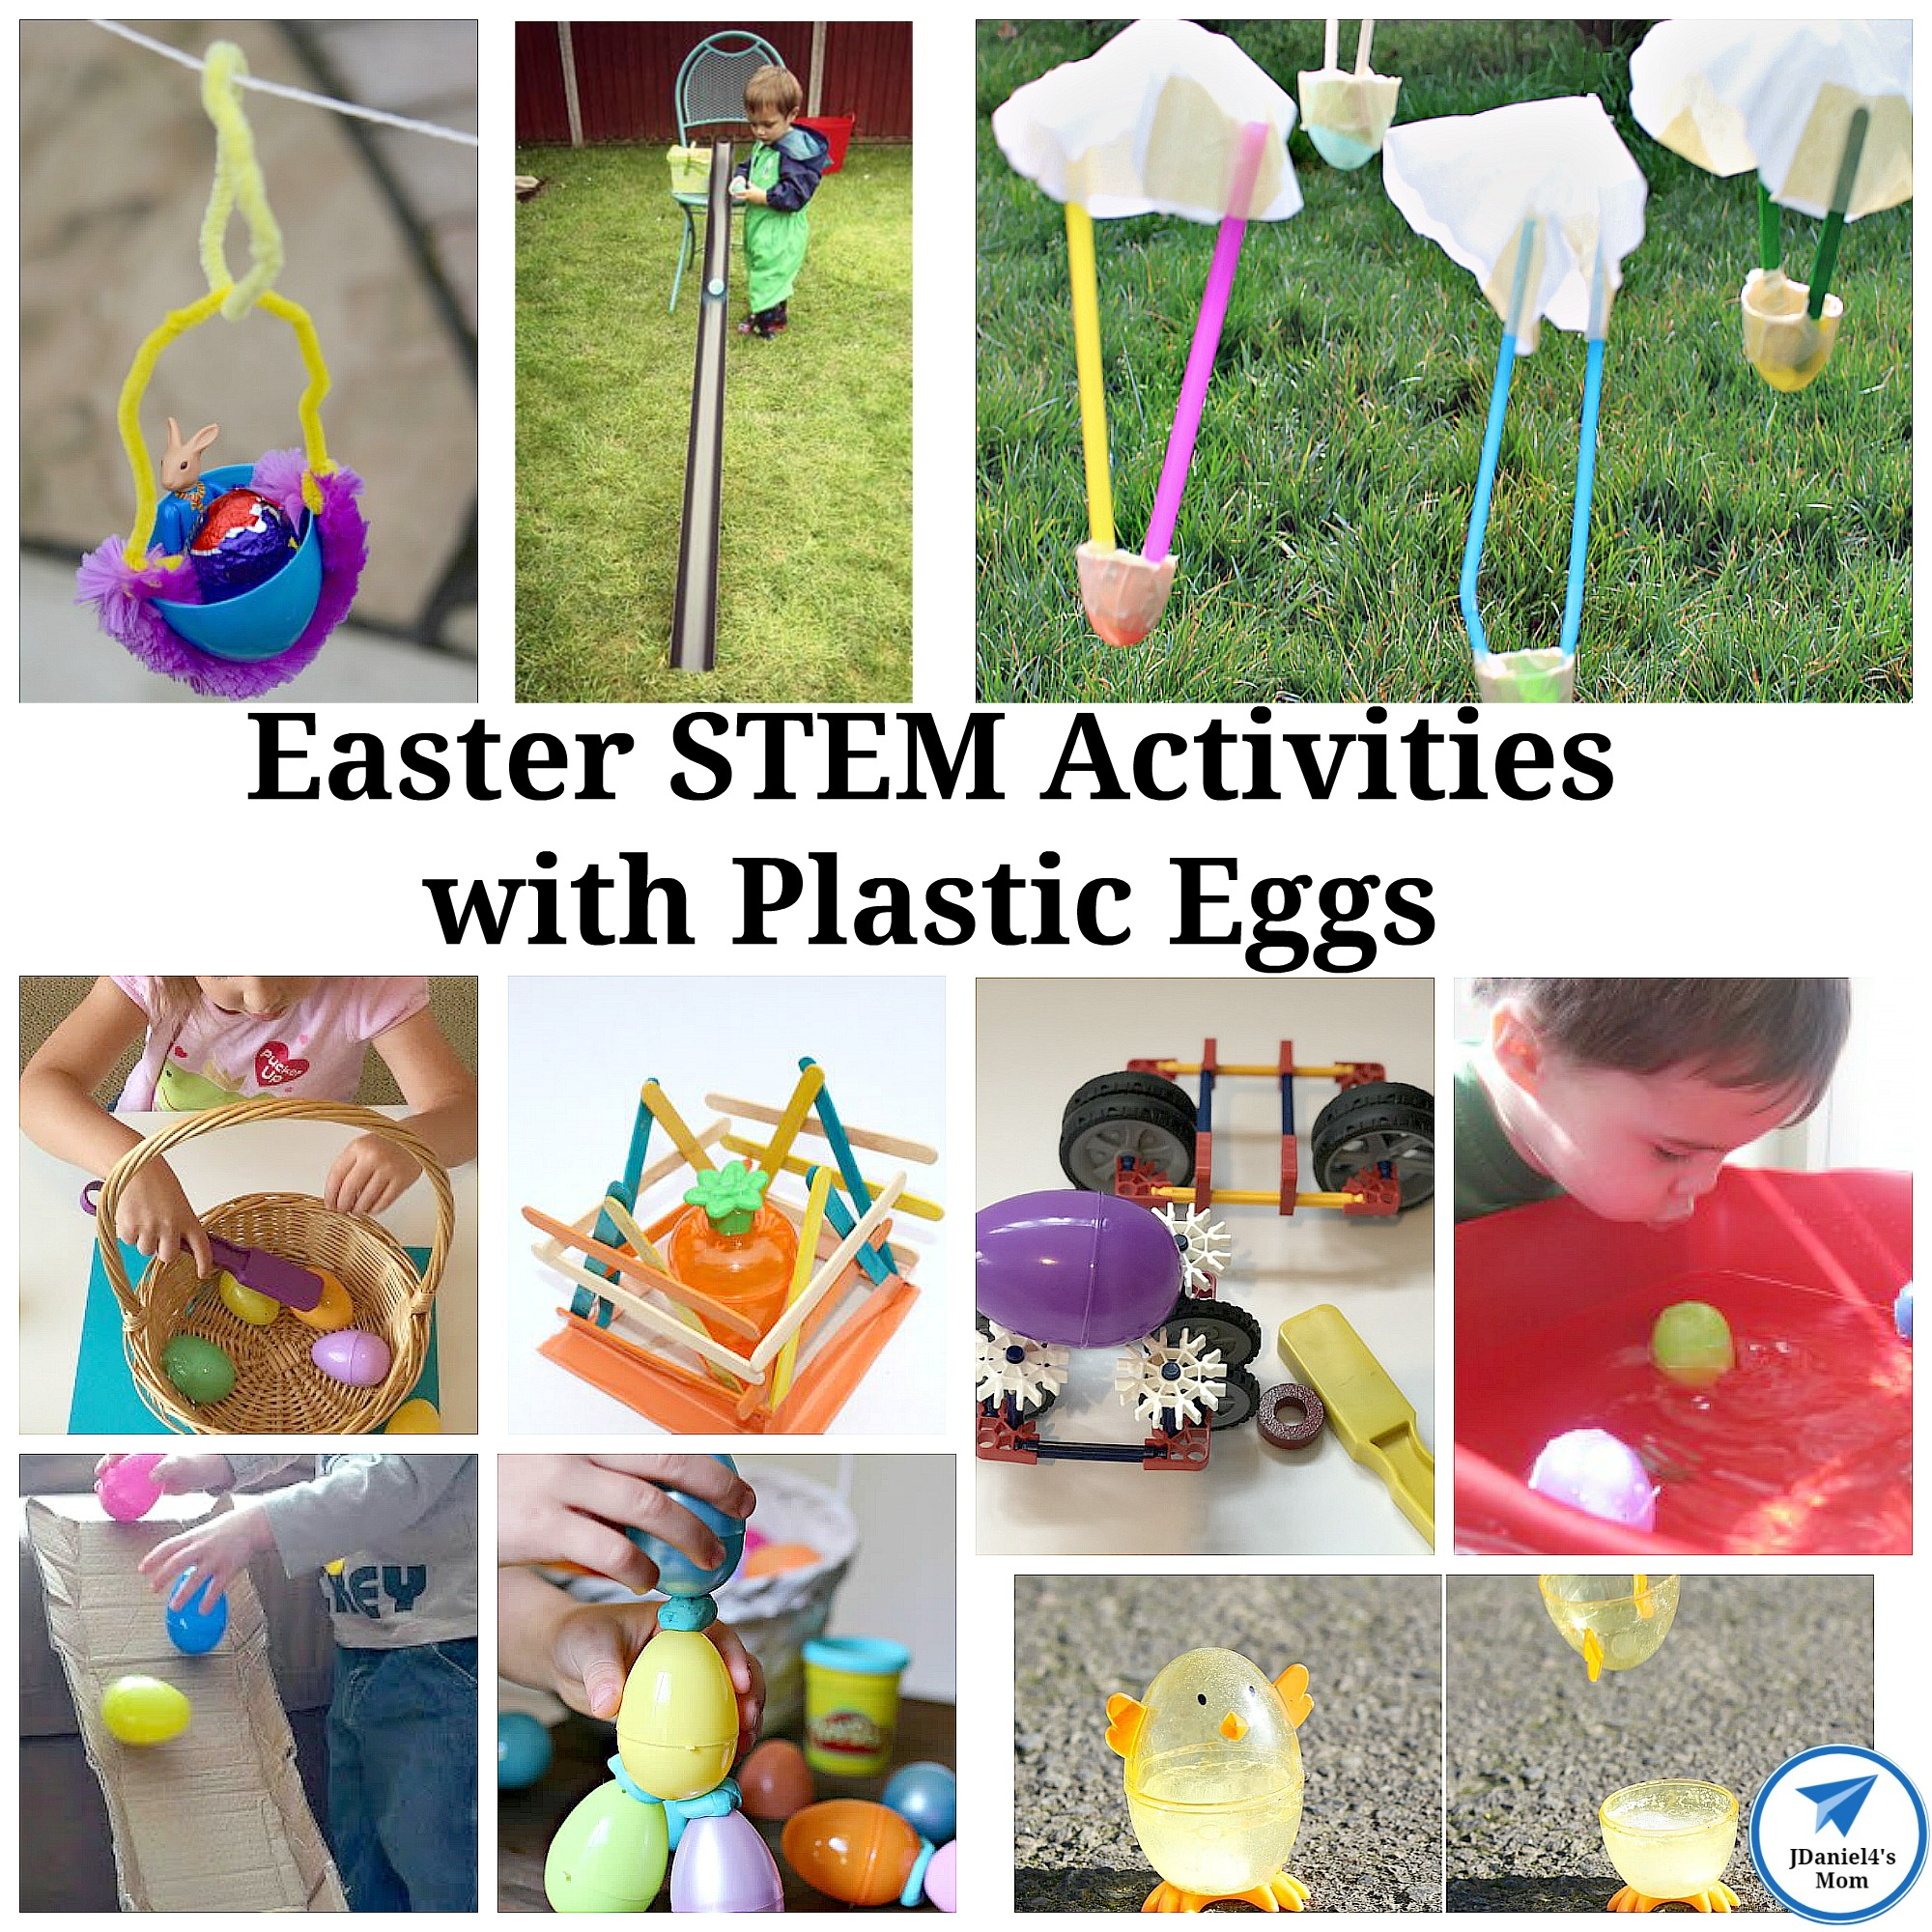 Easter STEM Activities with Plastic Eggs